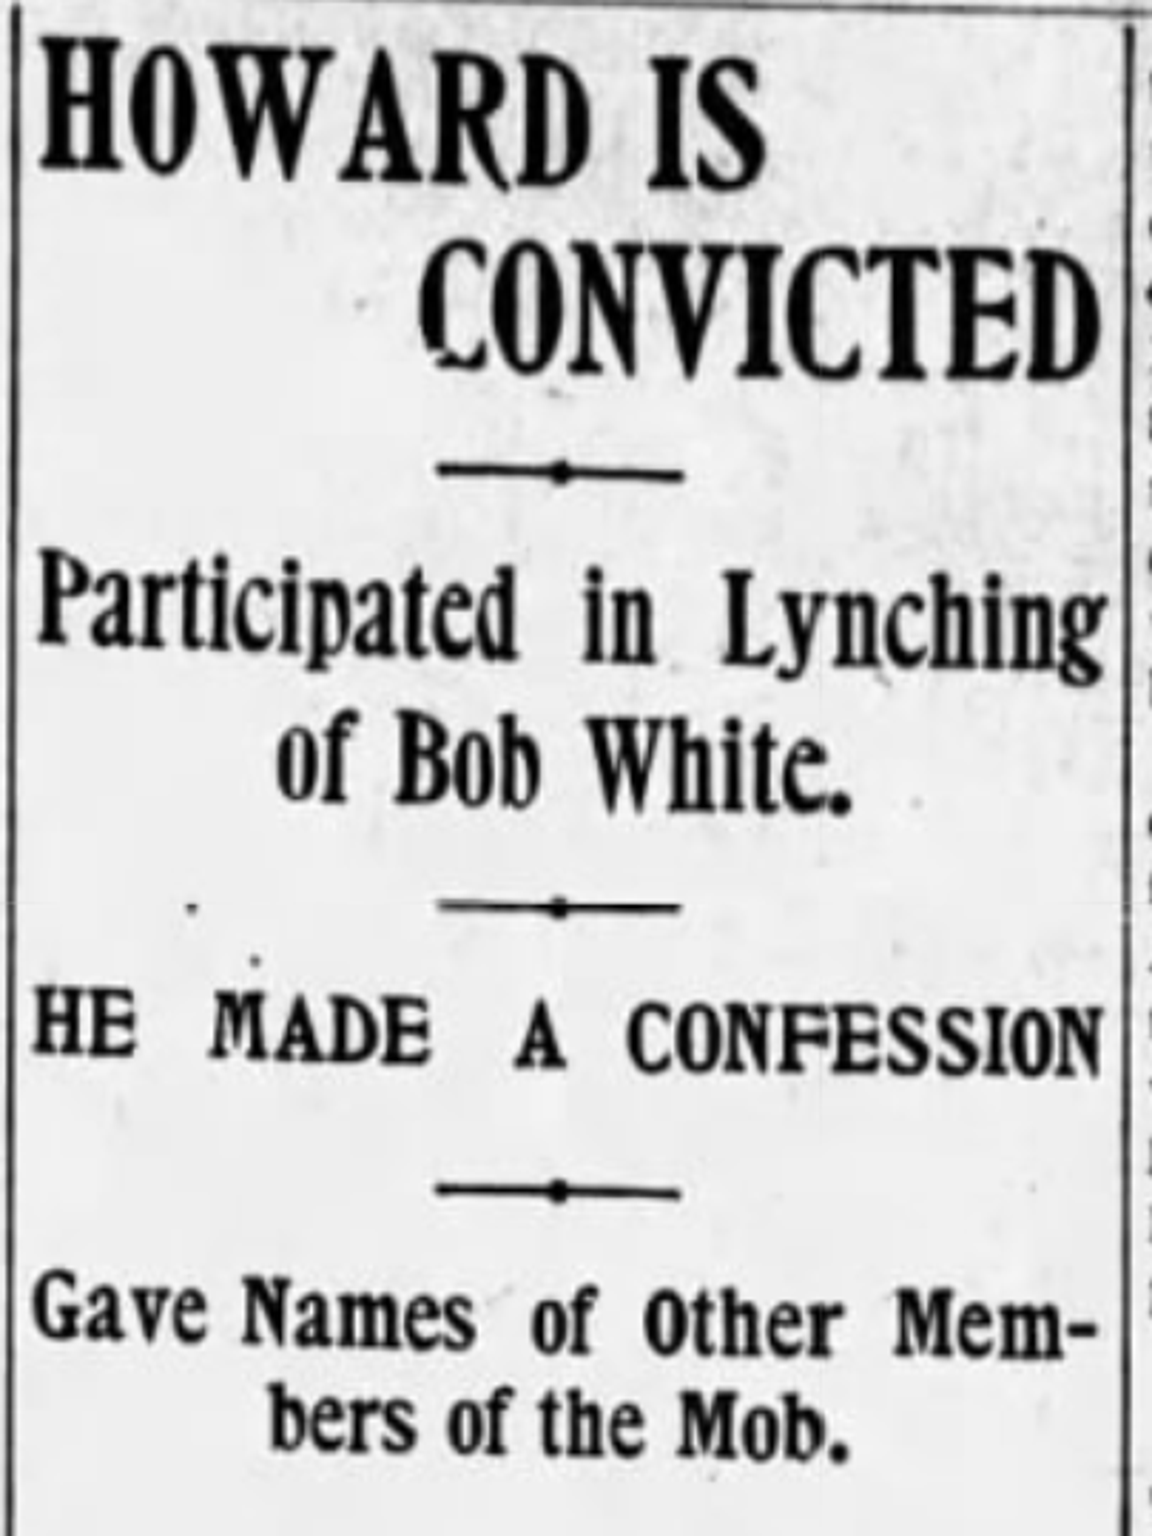 The Montgomery Advertiser headline from August 29, 1901 announcing the conviction of George Howard.